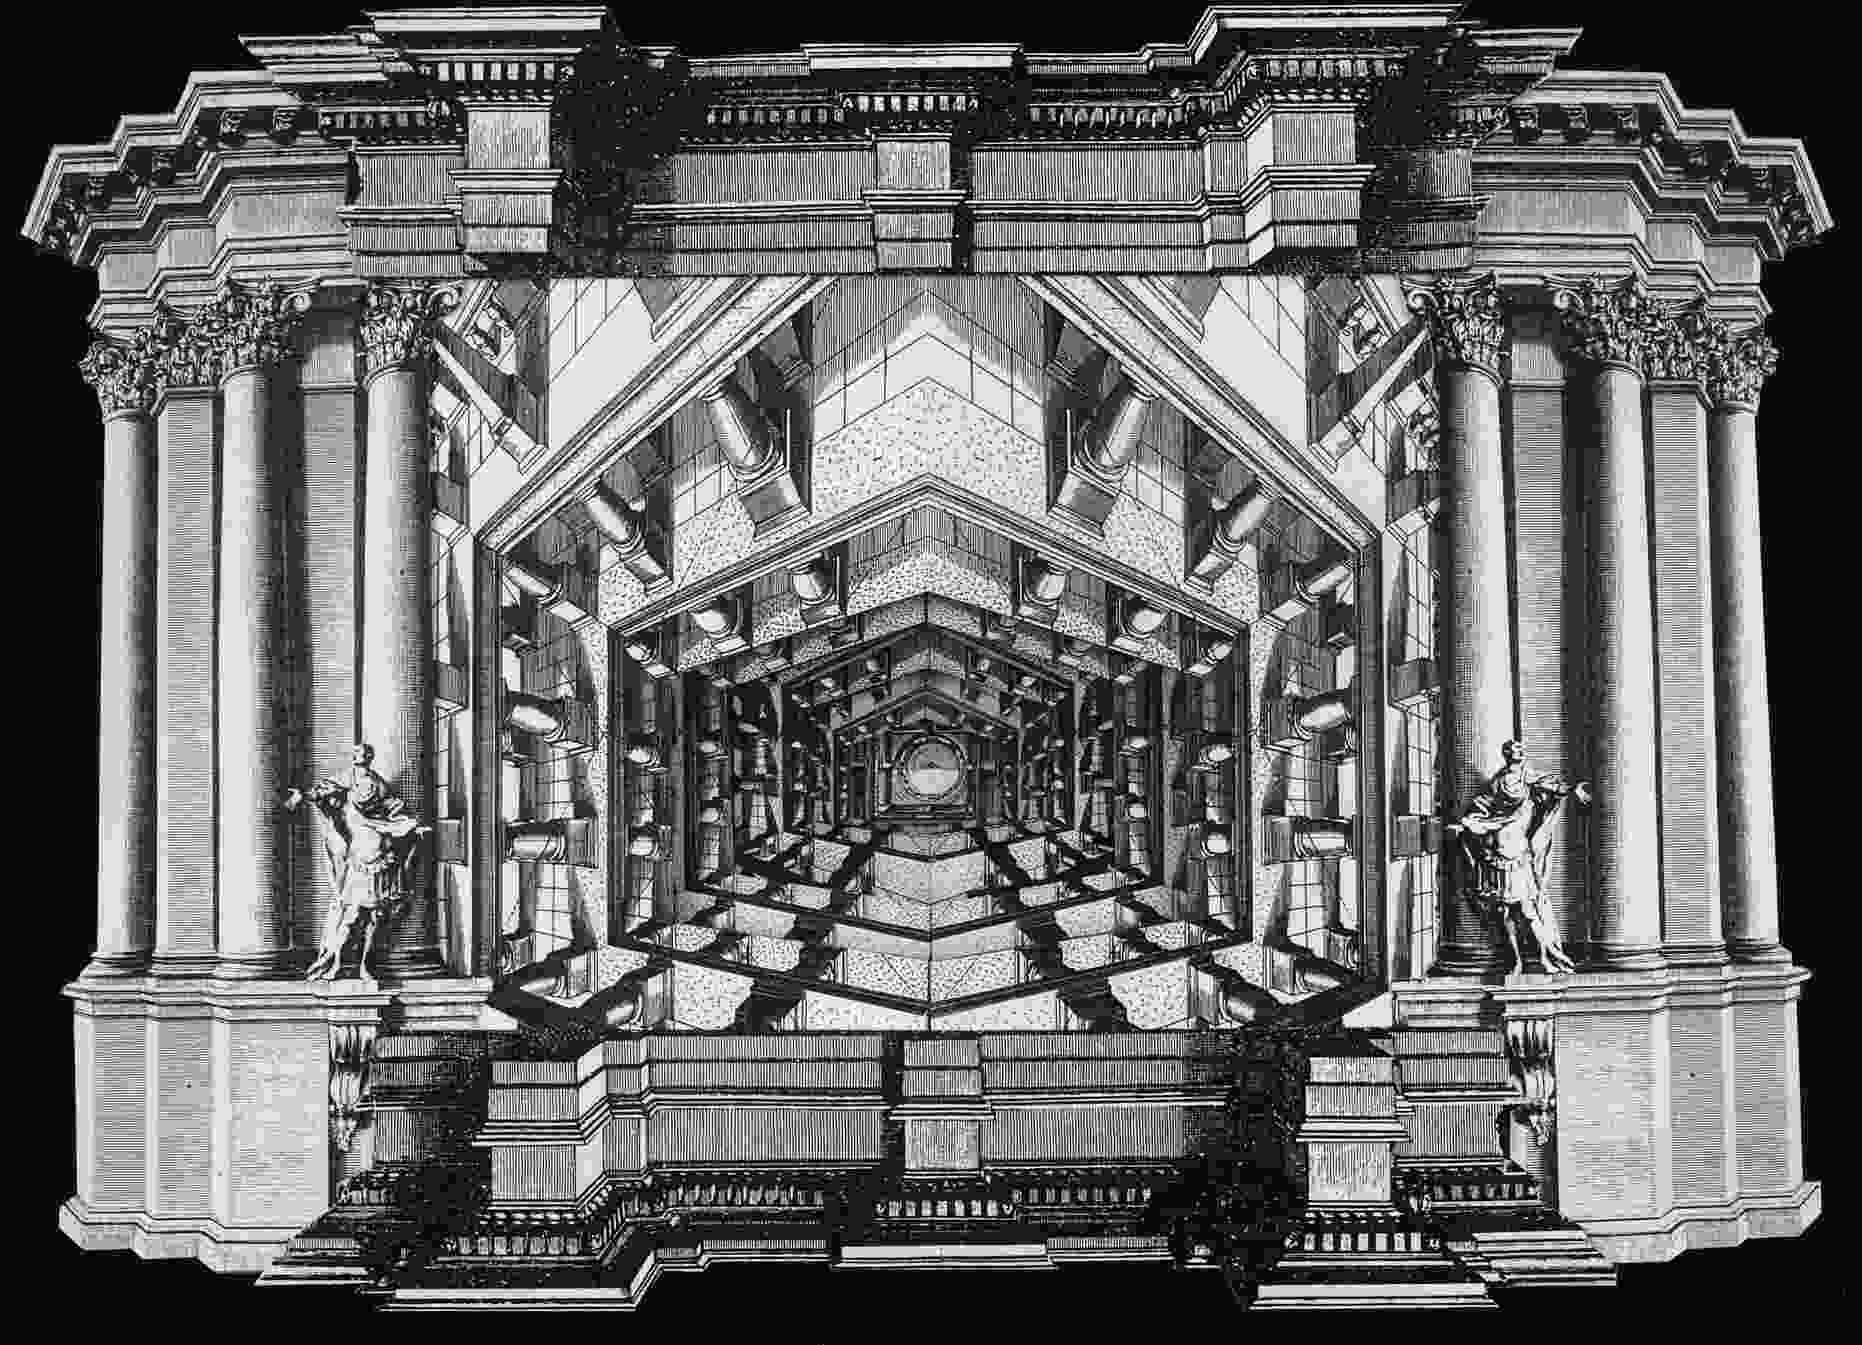 Perspective and Ceiling No. 1